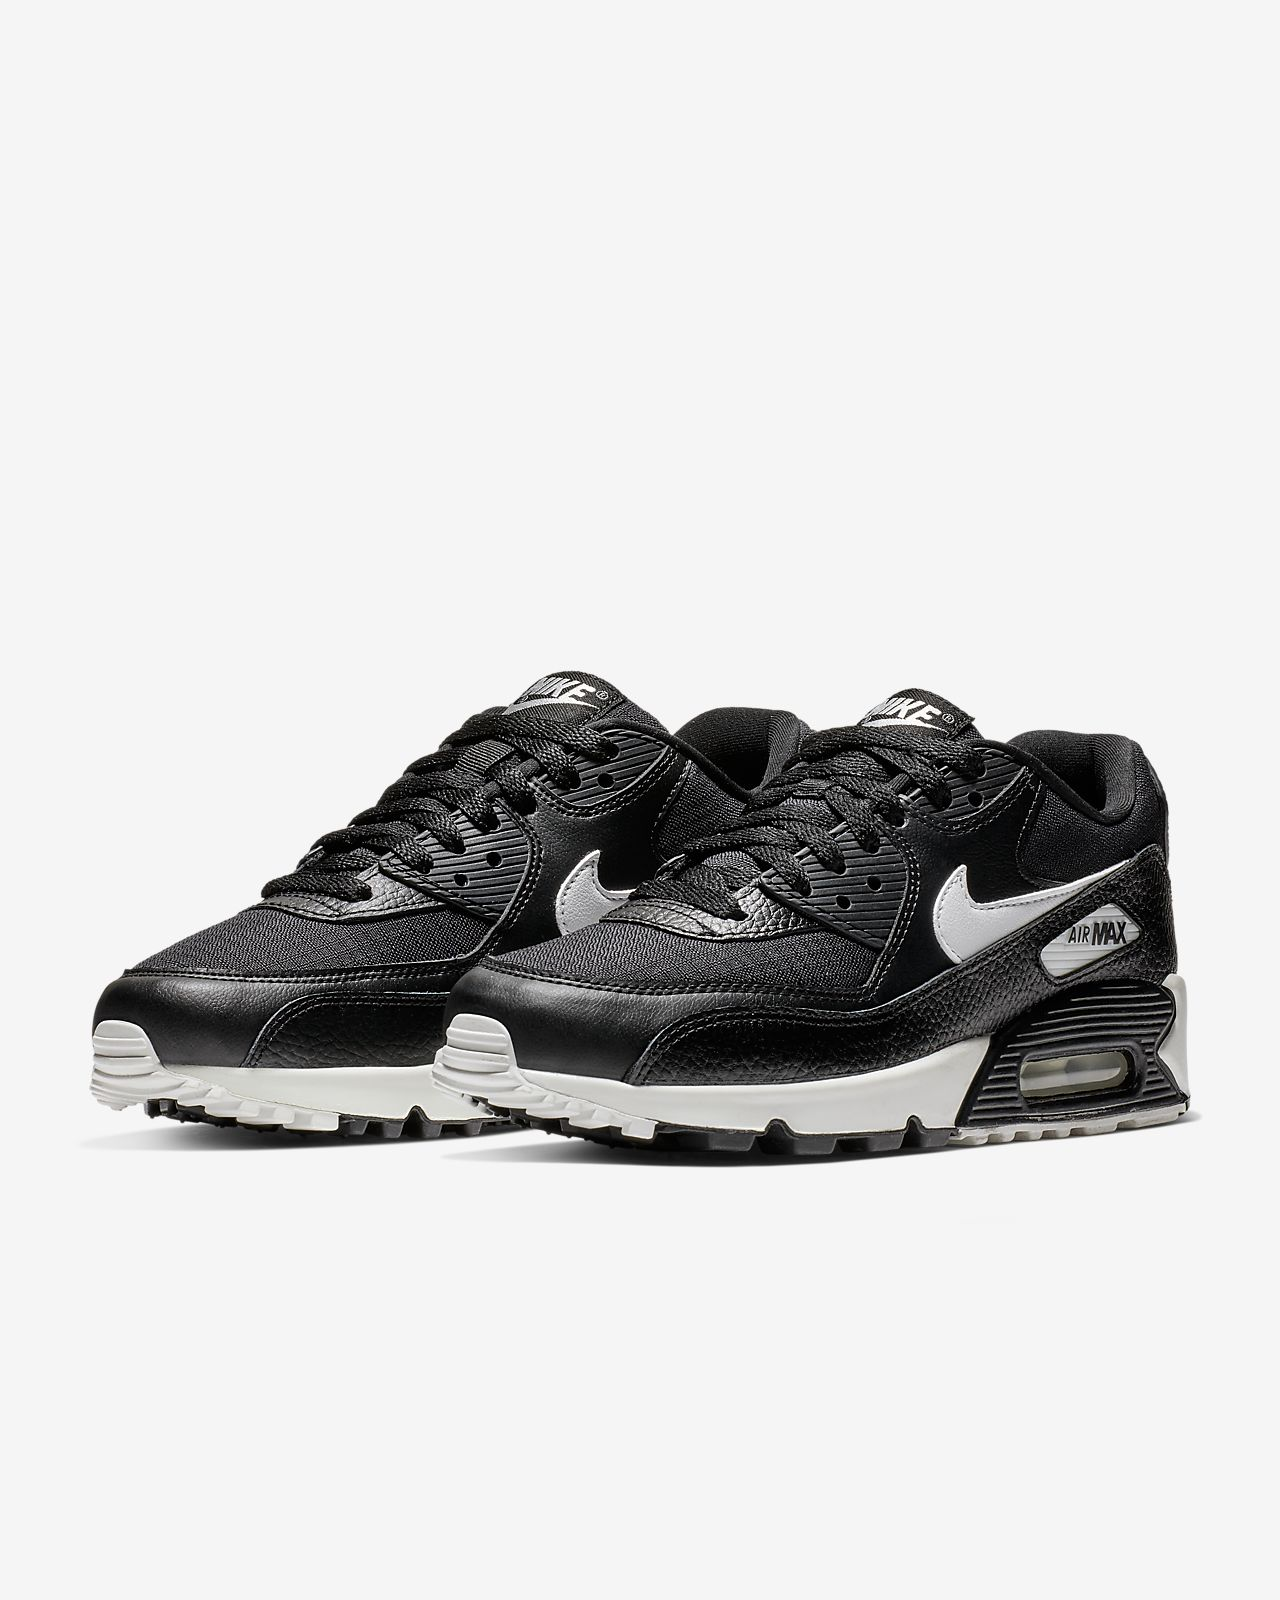 a919ea1737 Nike Air Max 90 Women's Shoe. Nike.com CA